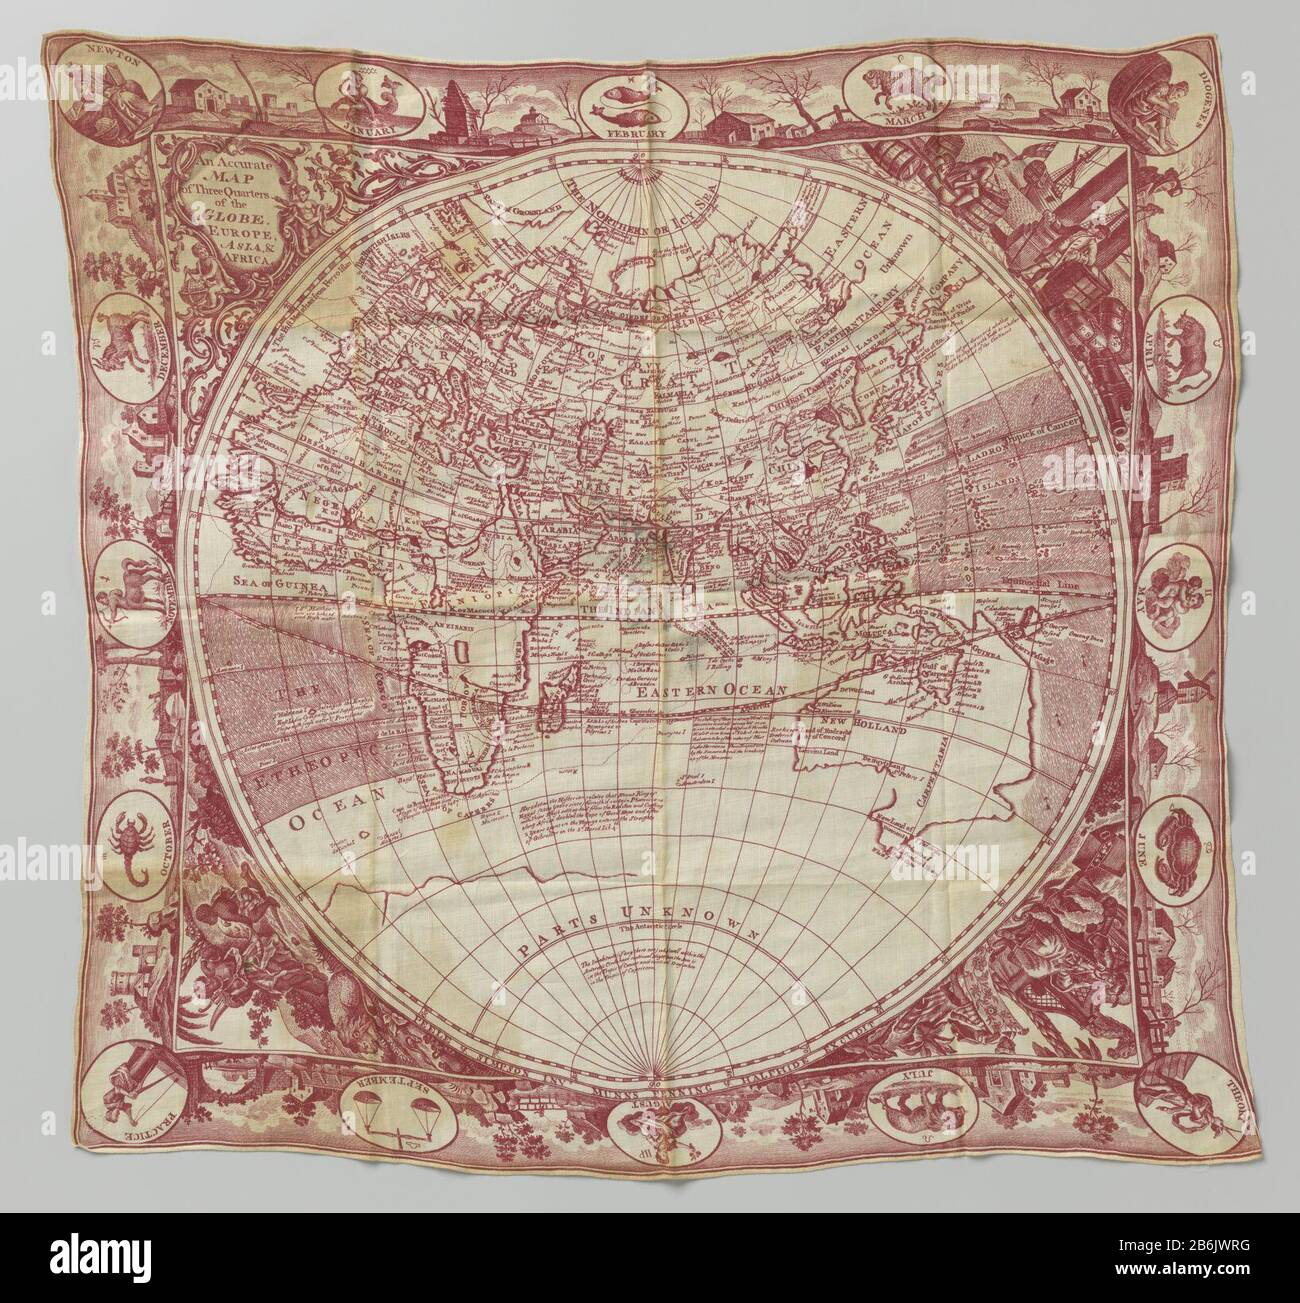 Nieuw Cloth of linen, printed with the world map and the signs of the RH-31